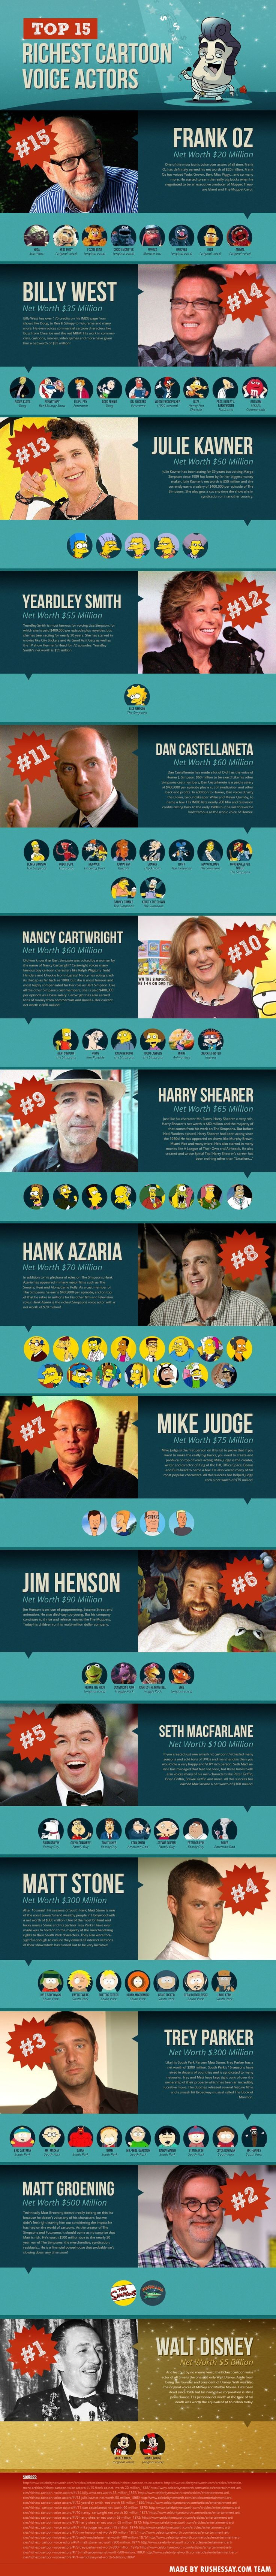 Top 15 Richest Cartoon Voice Actors #Infographics — Lightscap3s.com